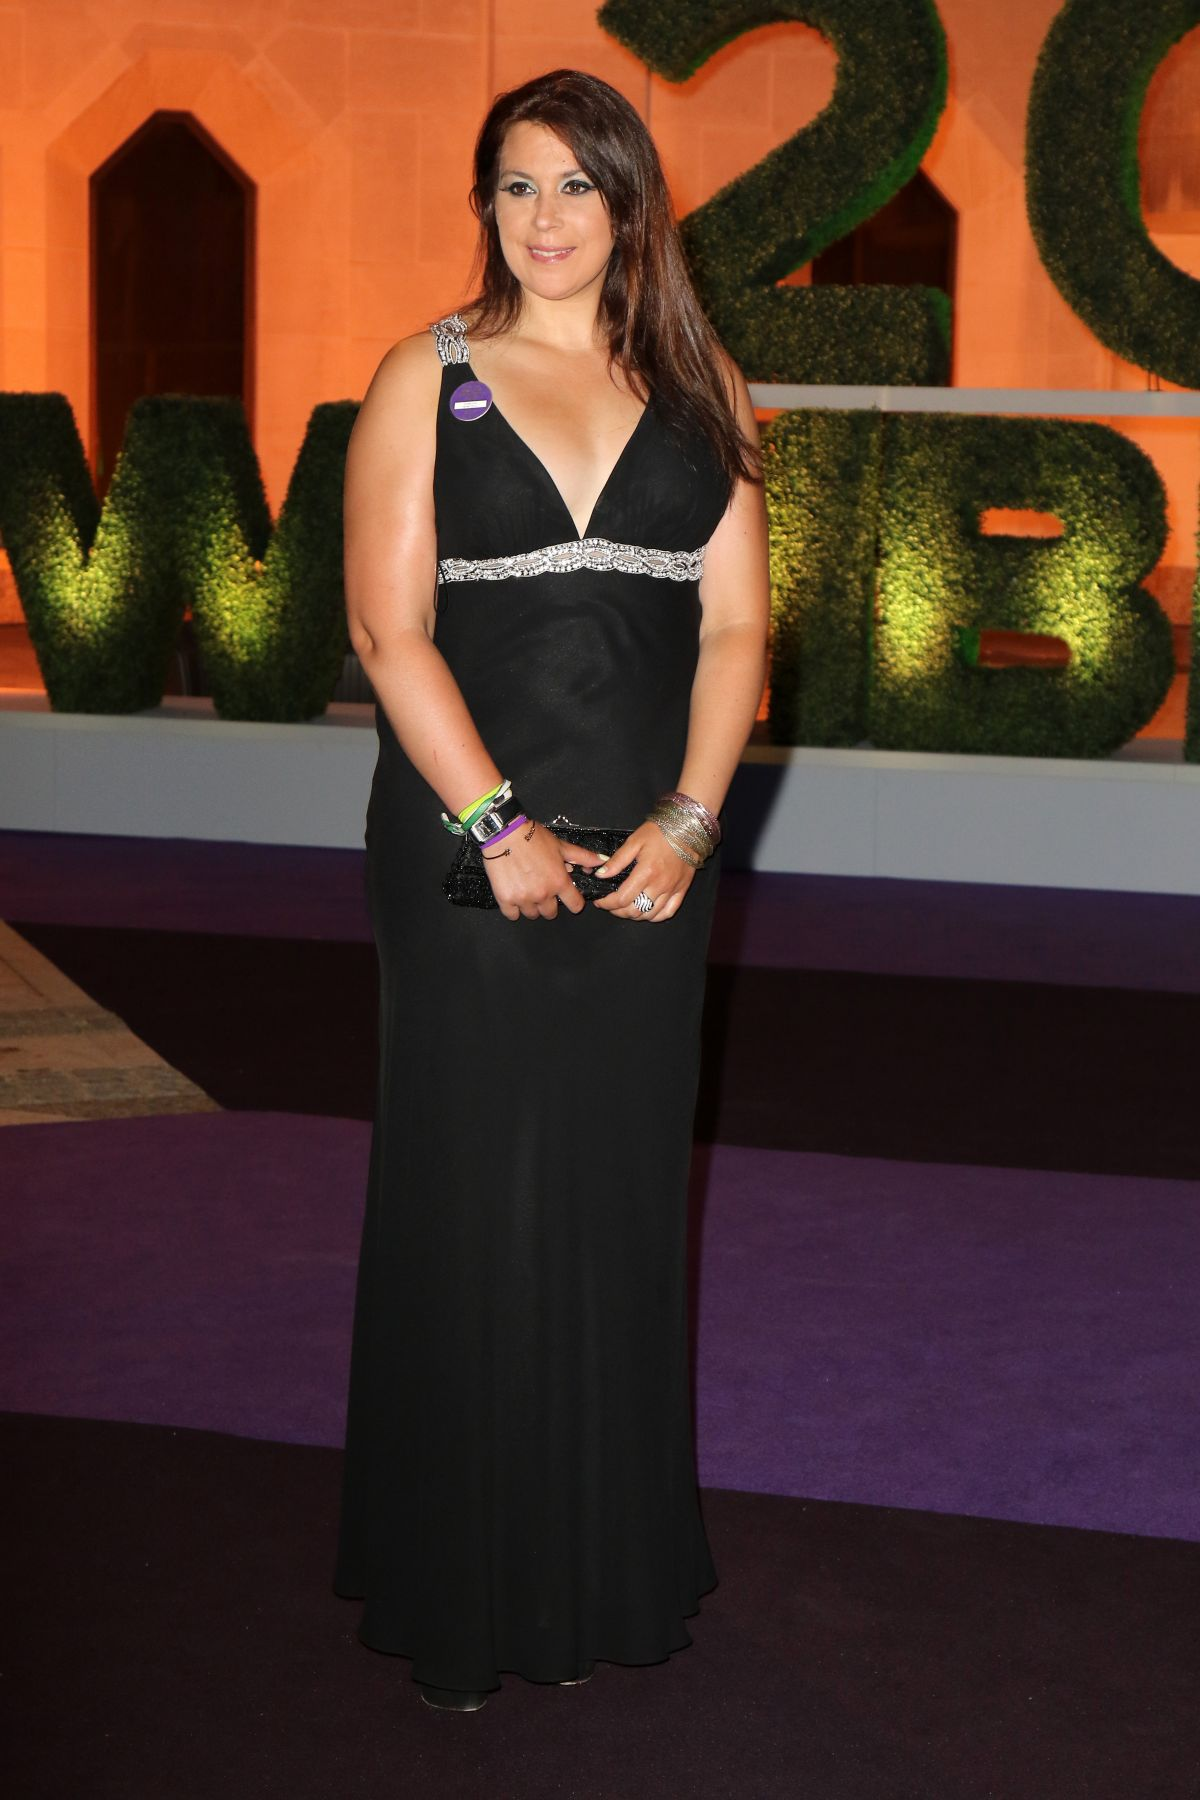 MARION BARTOLI at Wimbledon Champions Dinner in London 07/16/2017